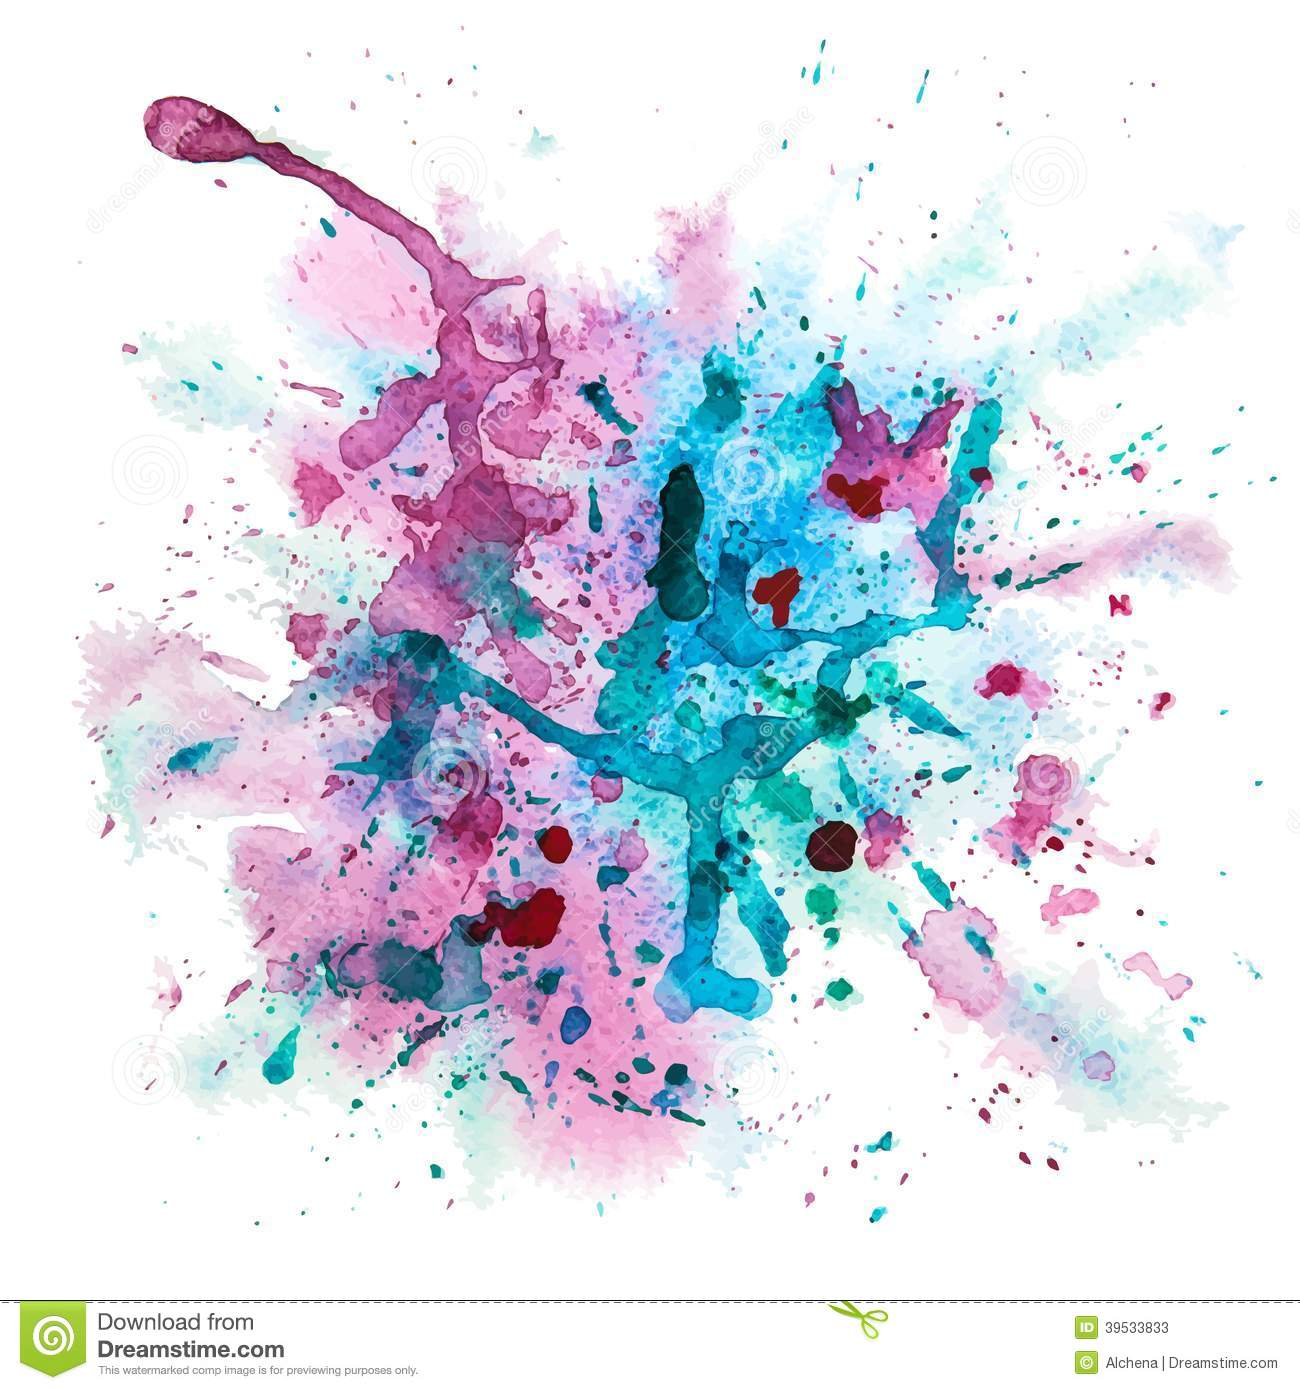 5 Watercolor Splatter Vector Images